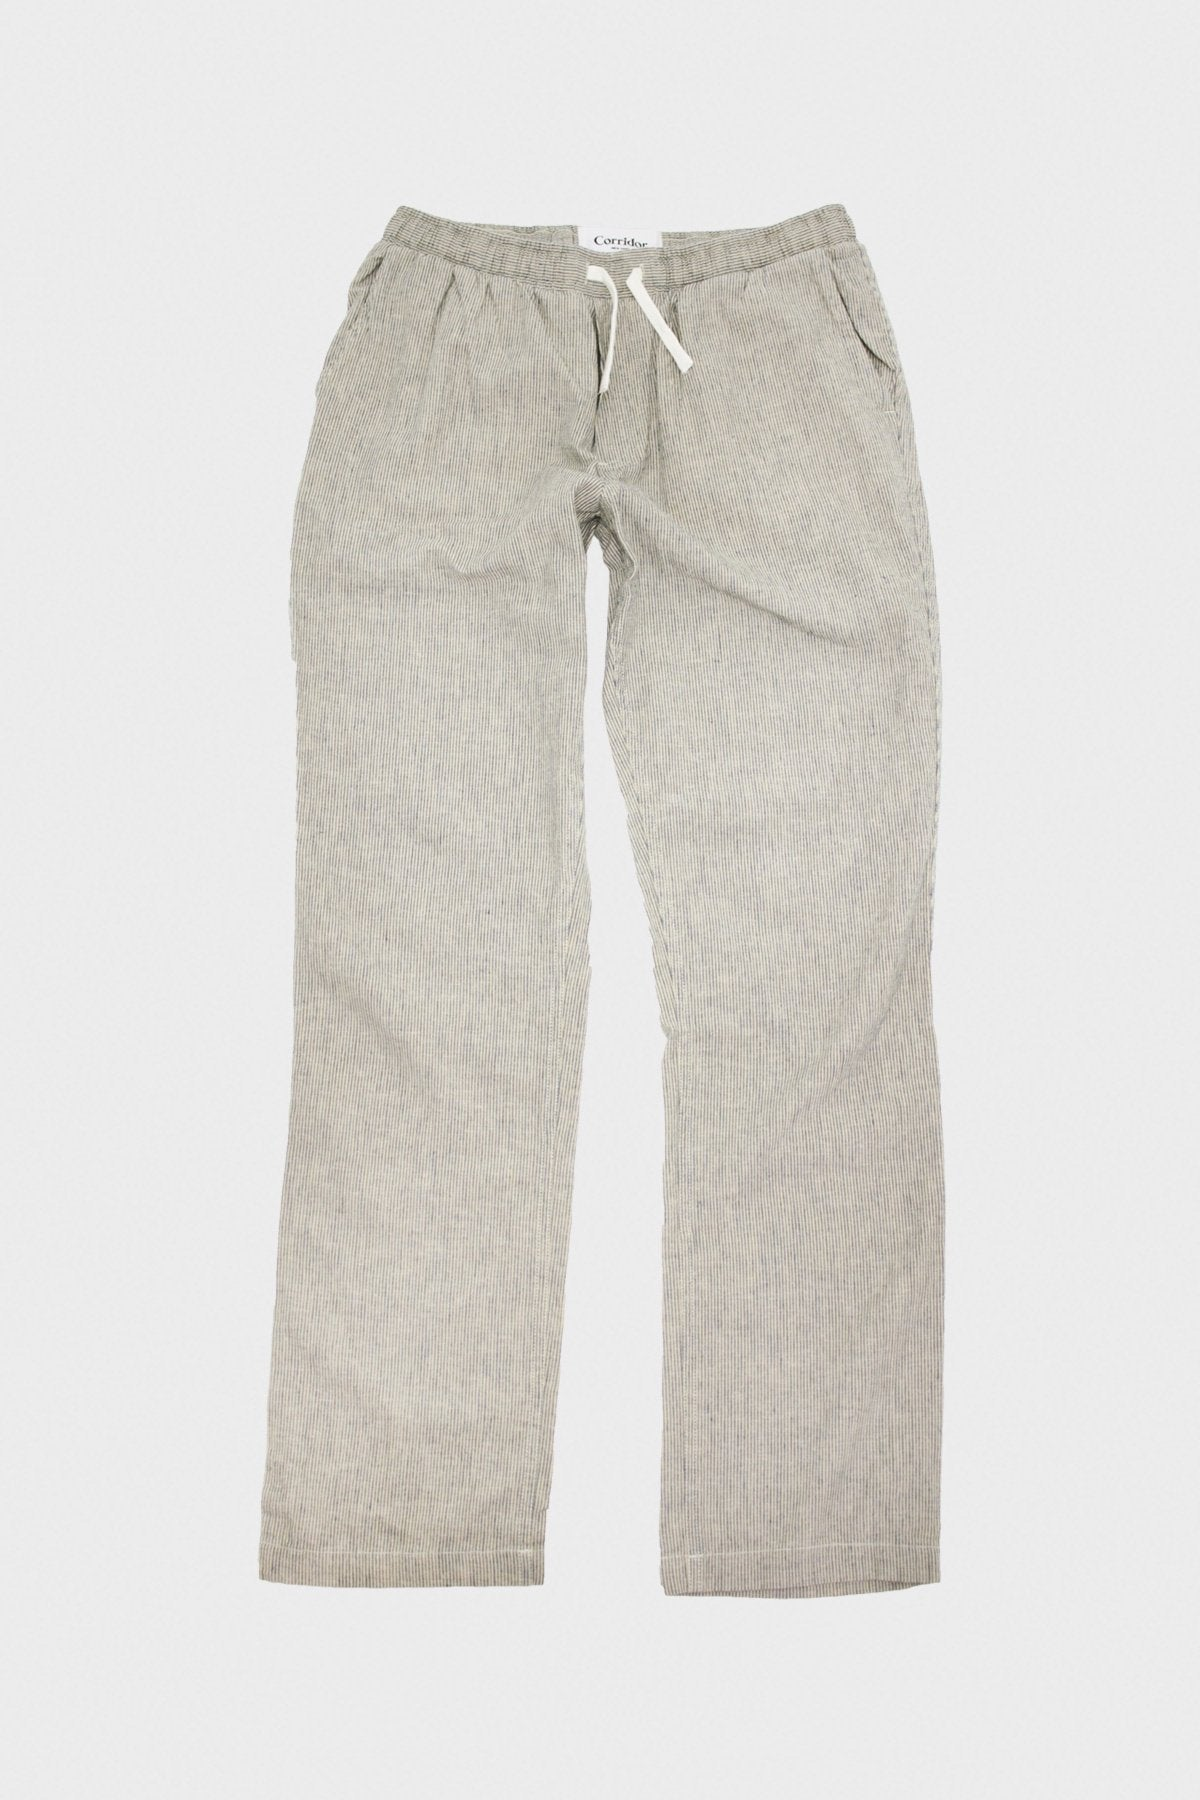 Corridor - Ticking Stripe Linen Drawstring Trousers - Natural - Canoe Club